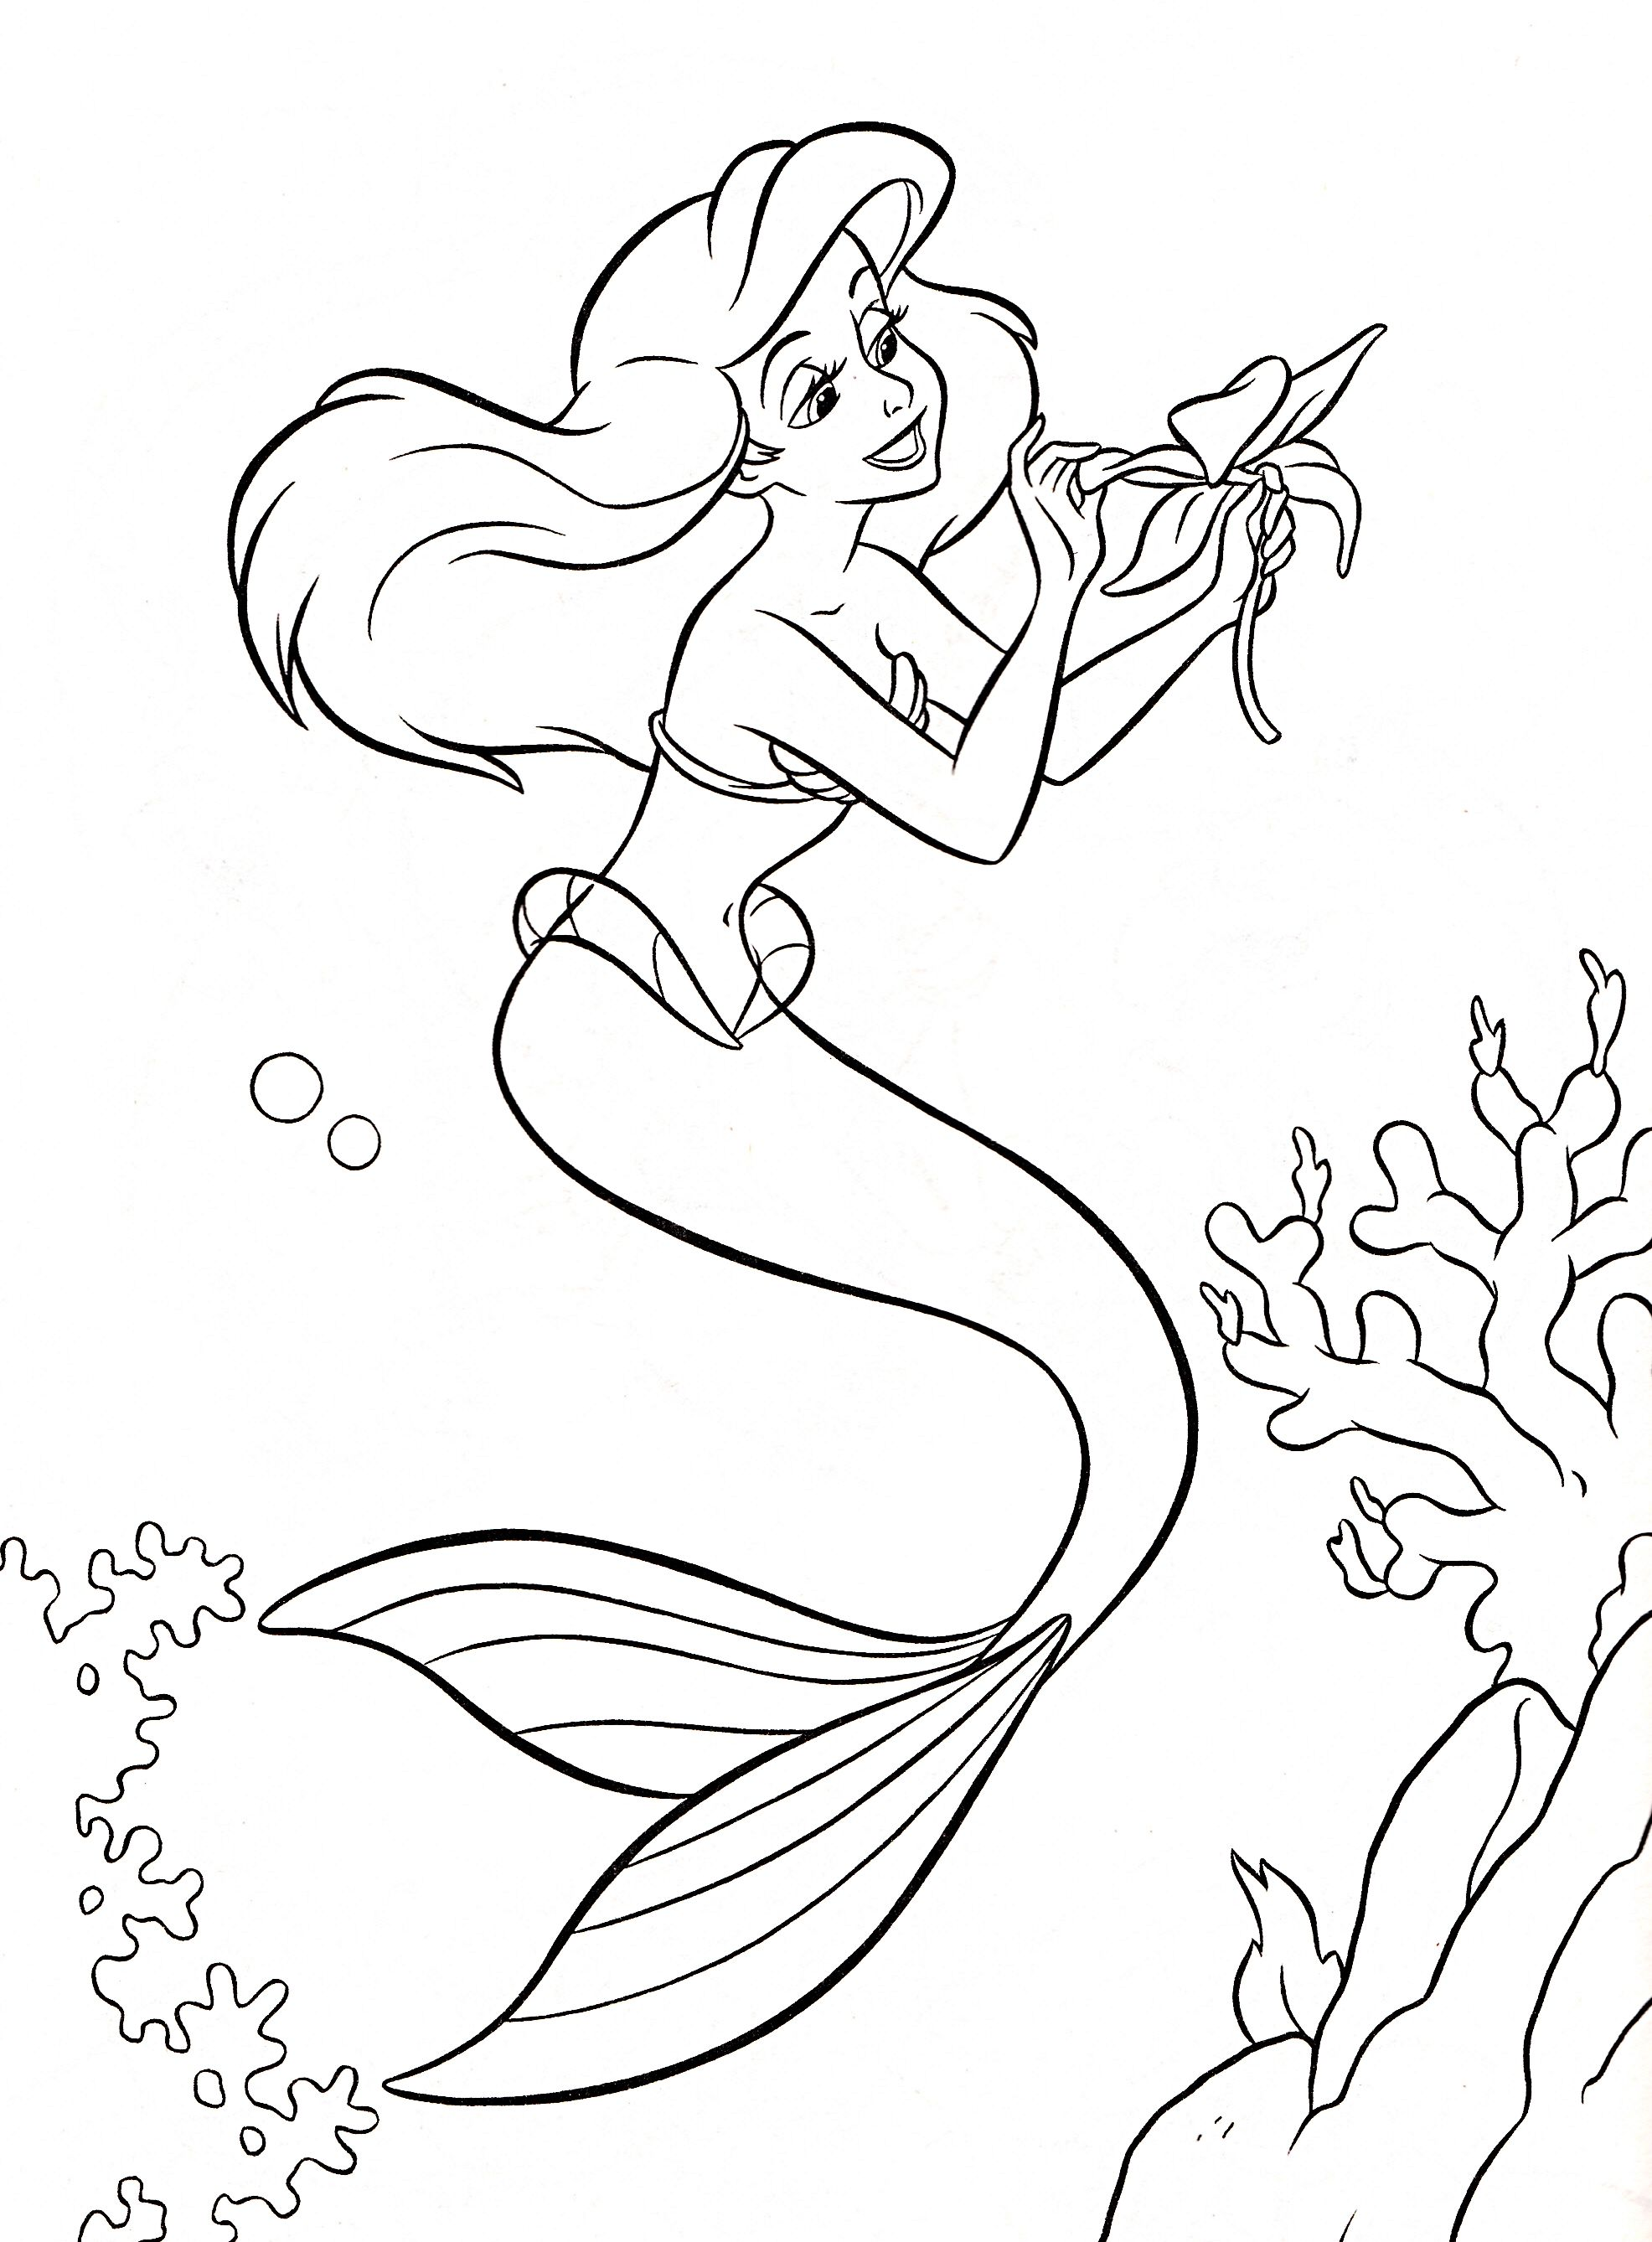 Walt-Disney-Coloring-Pages-Princess-Ariel-walt-disney-characters ...